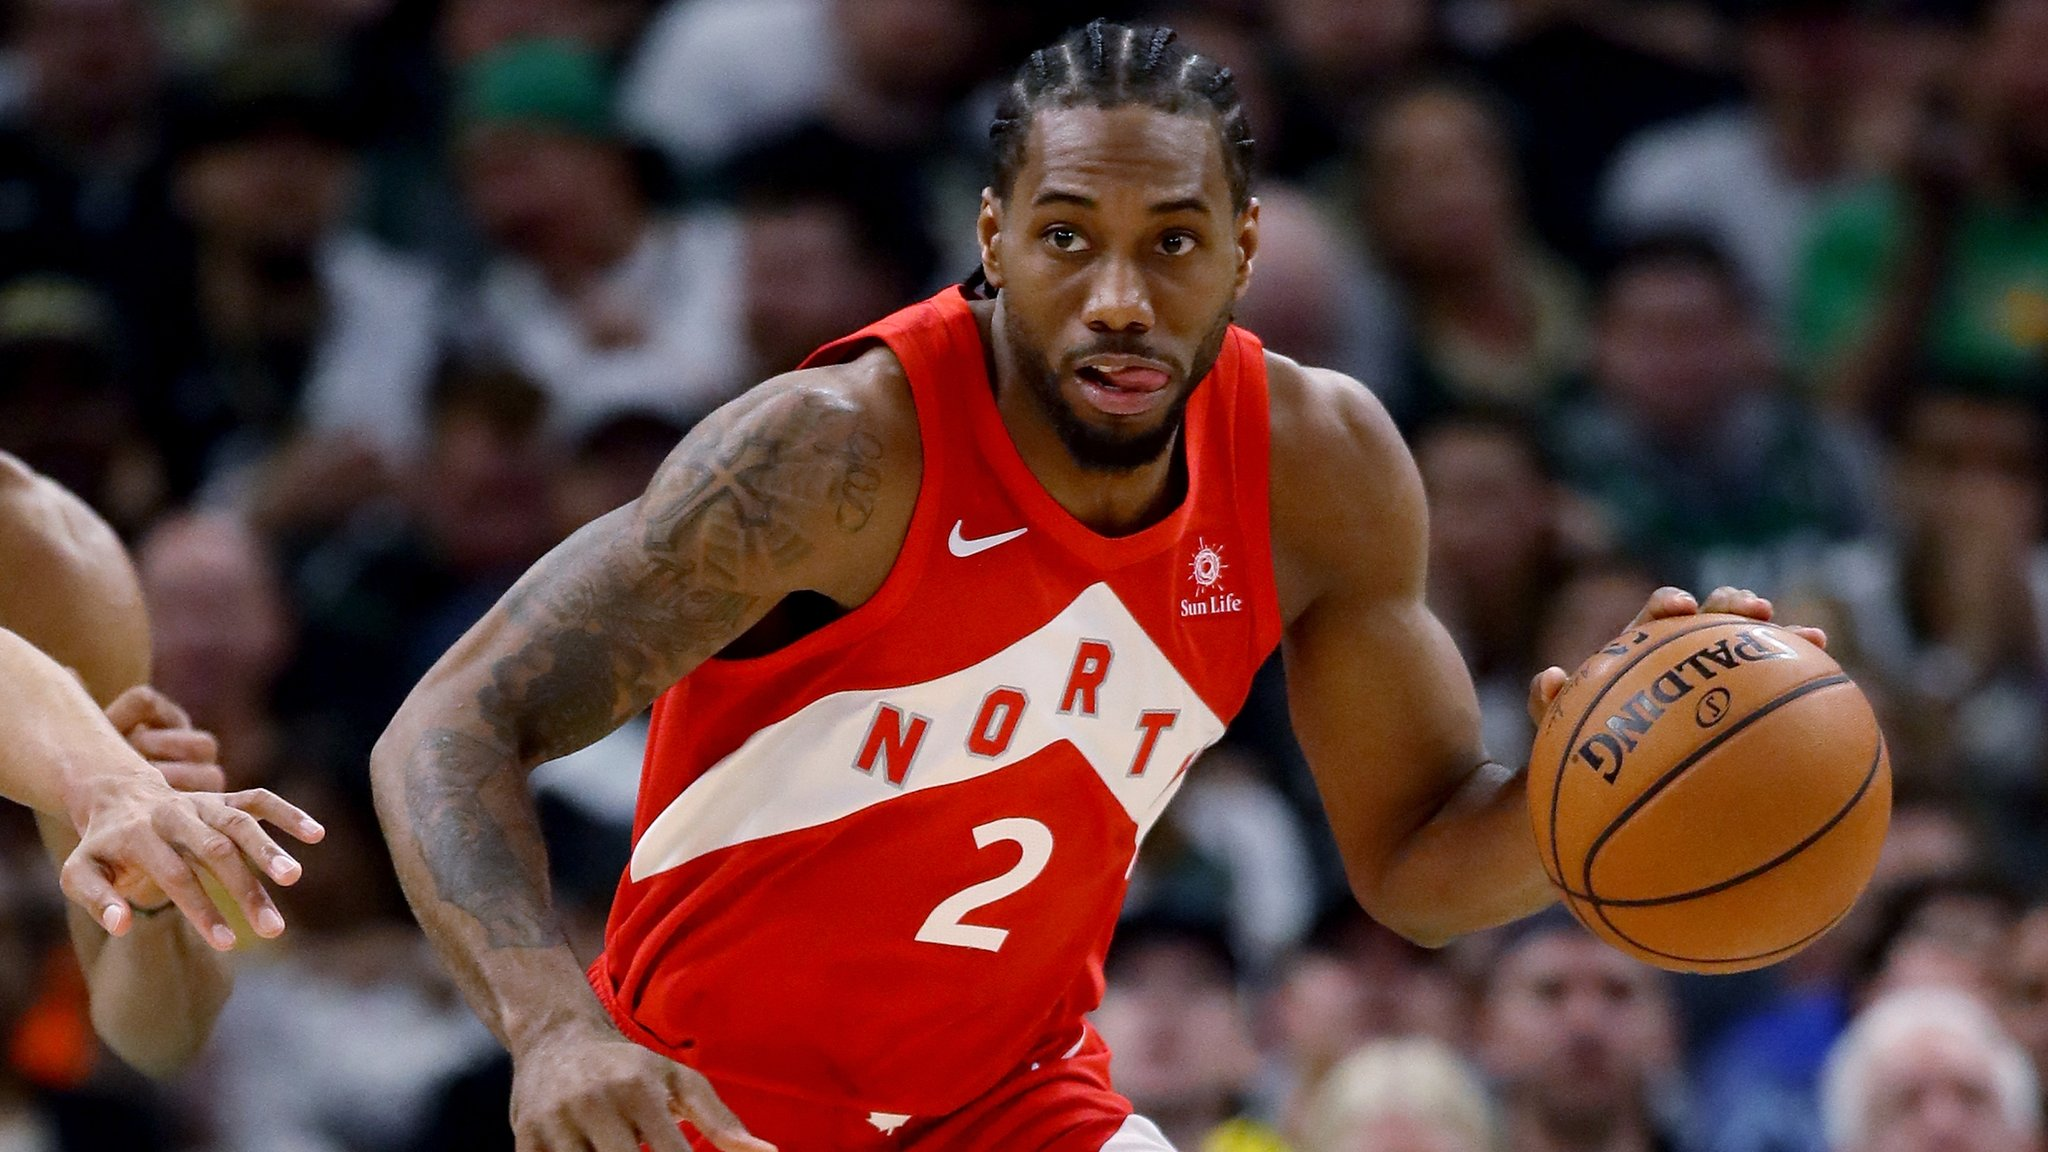 NBA play-offs: Toronto Raptors beat Milwaukee Bucks to lead series 3-2